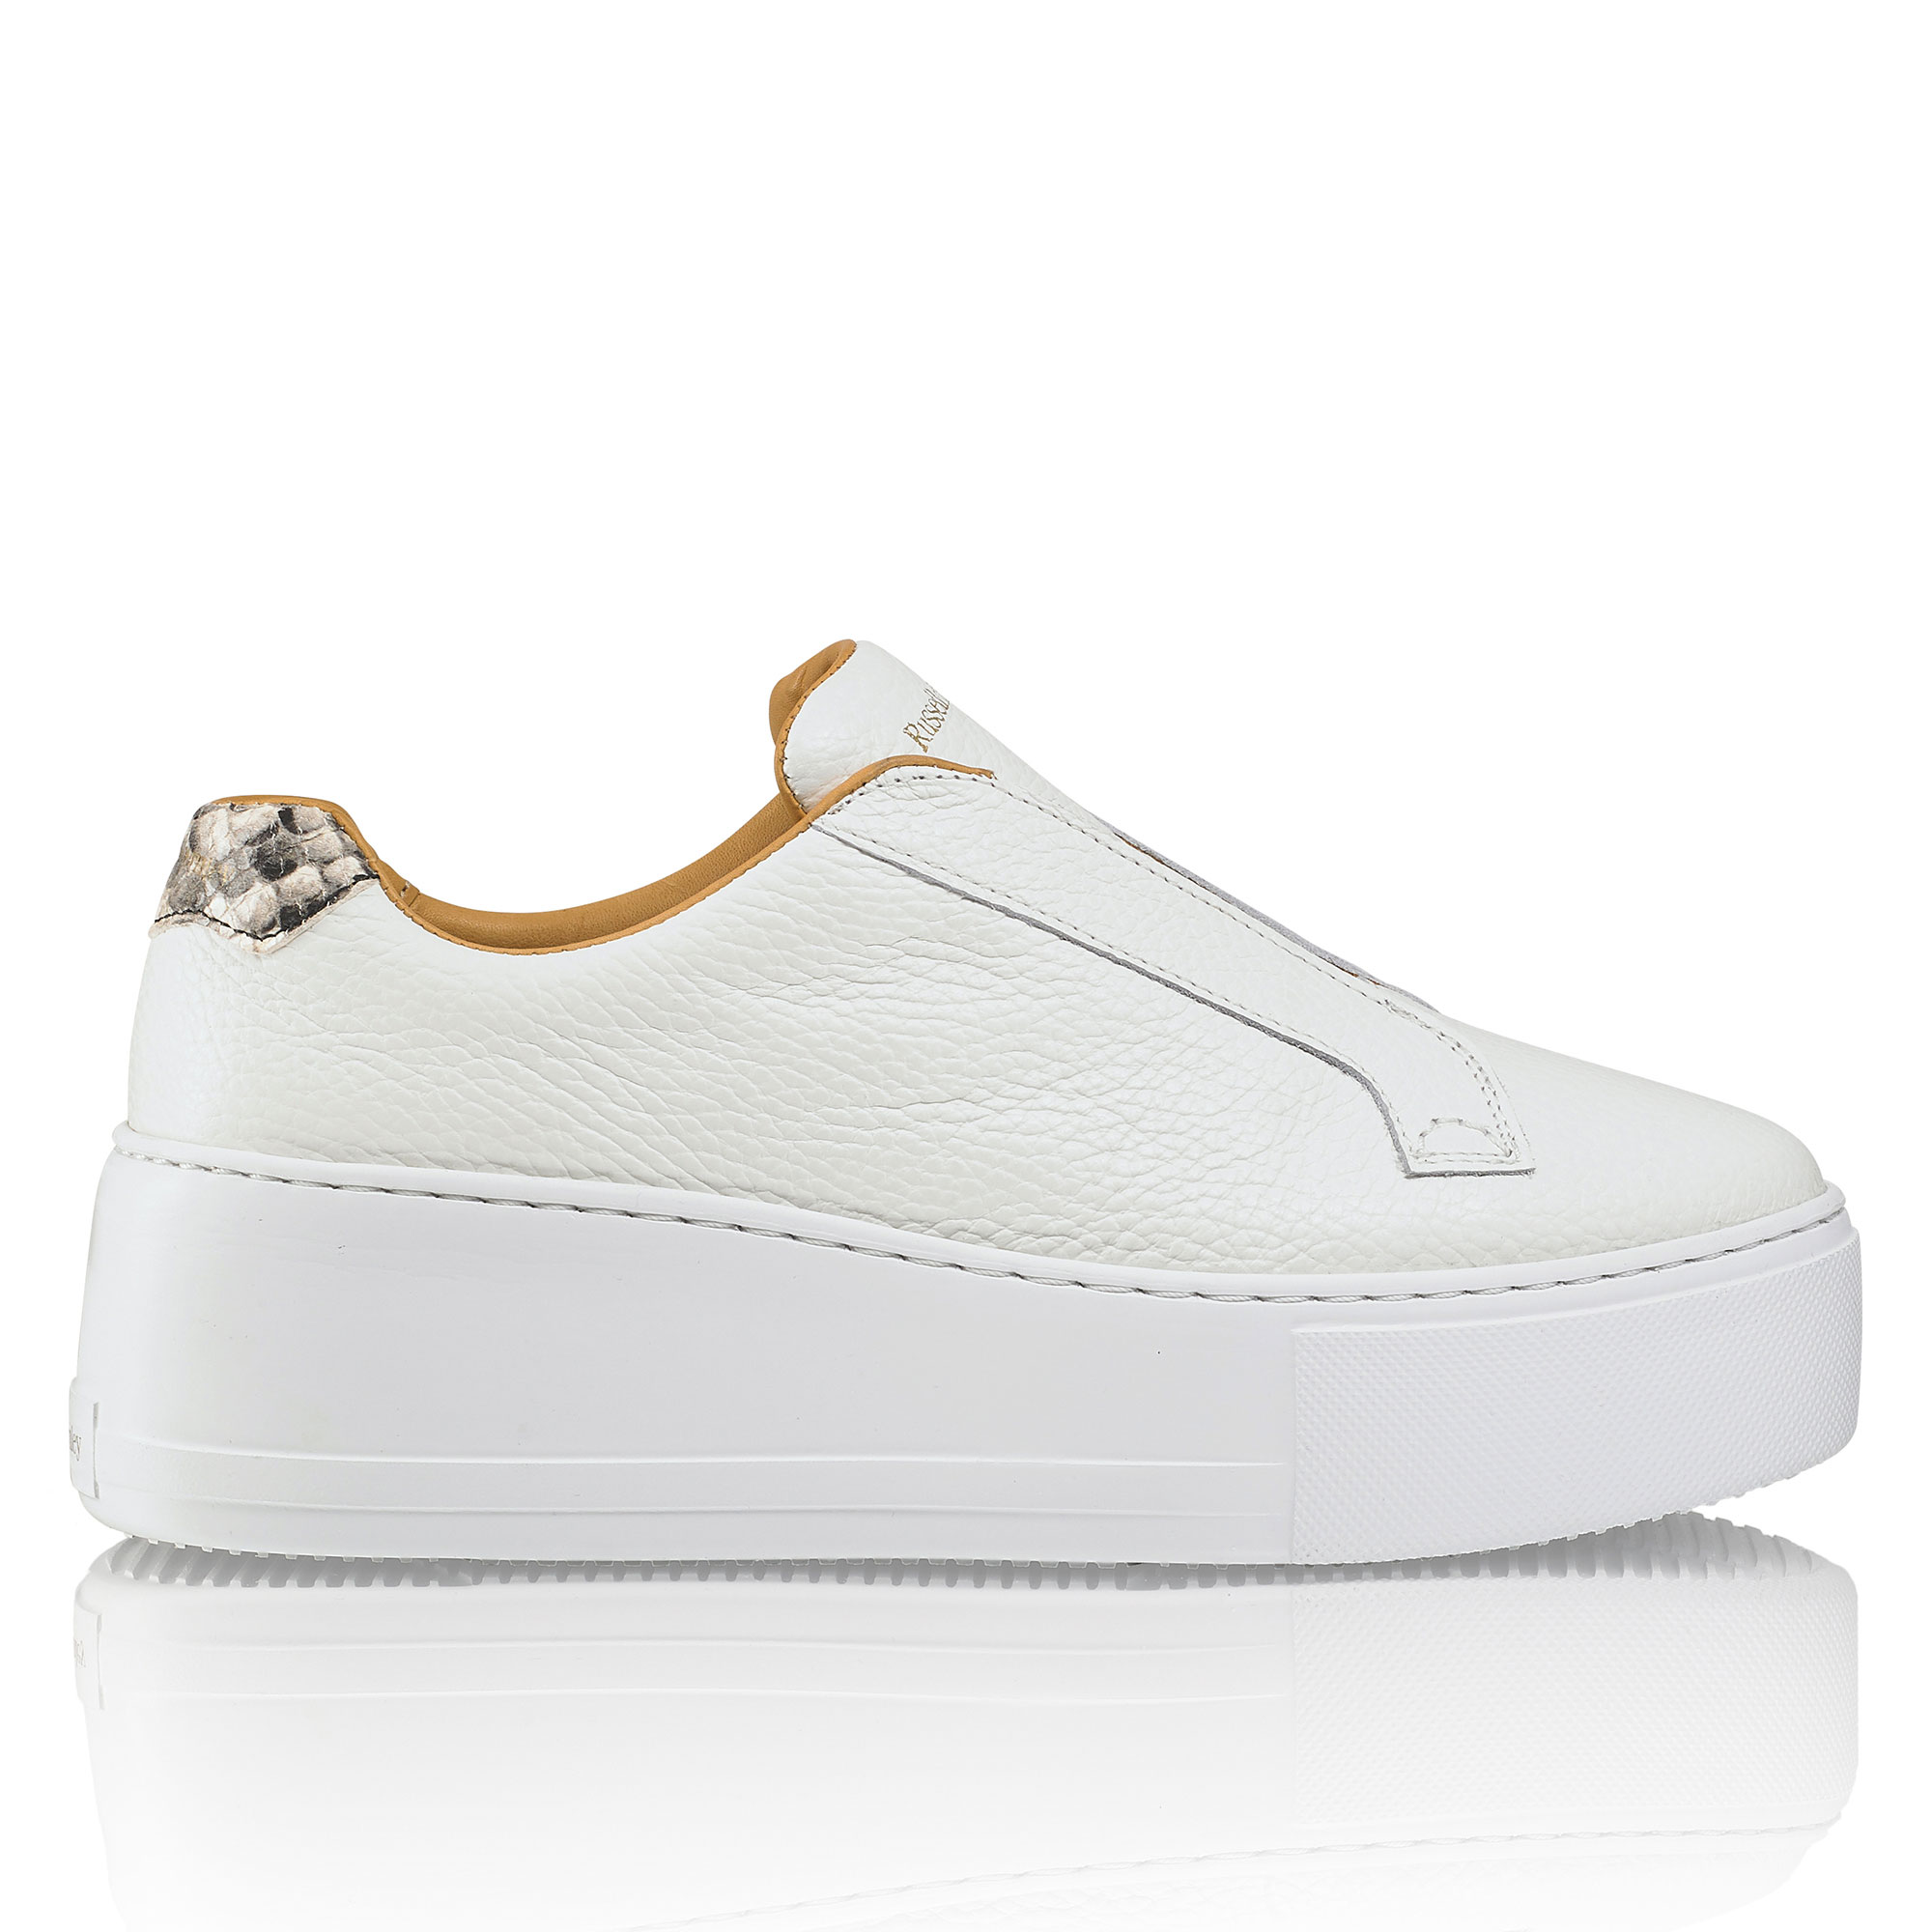 russell and bromley mens trainers